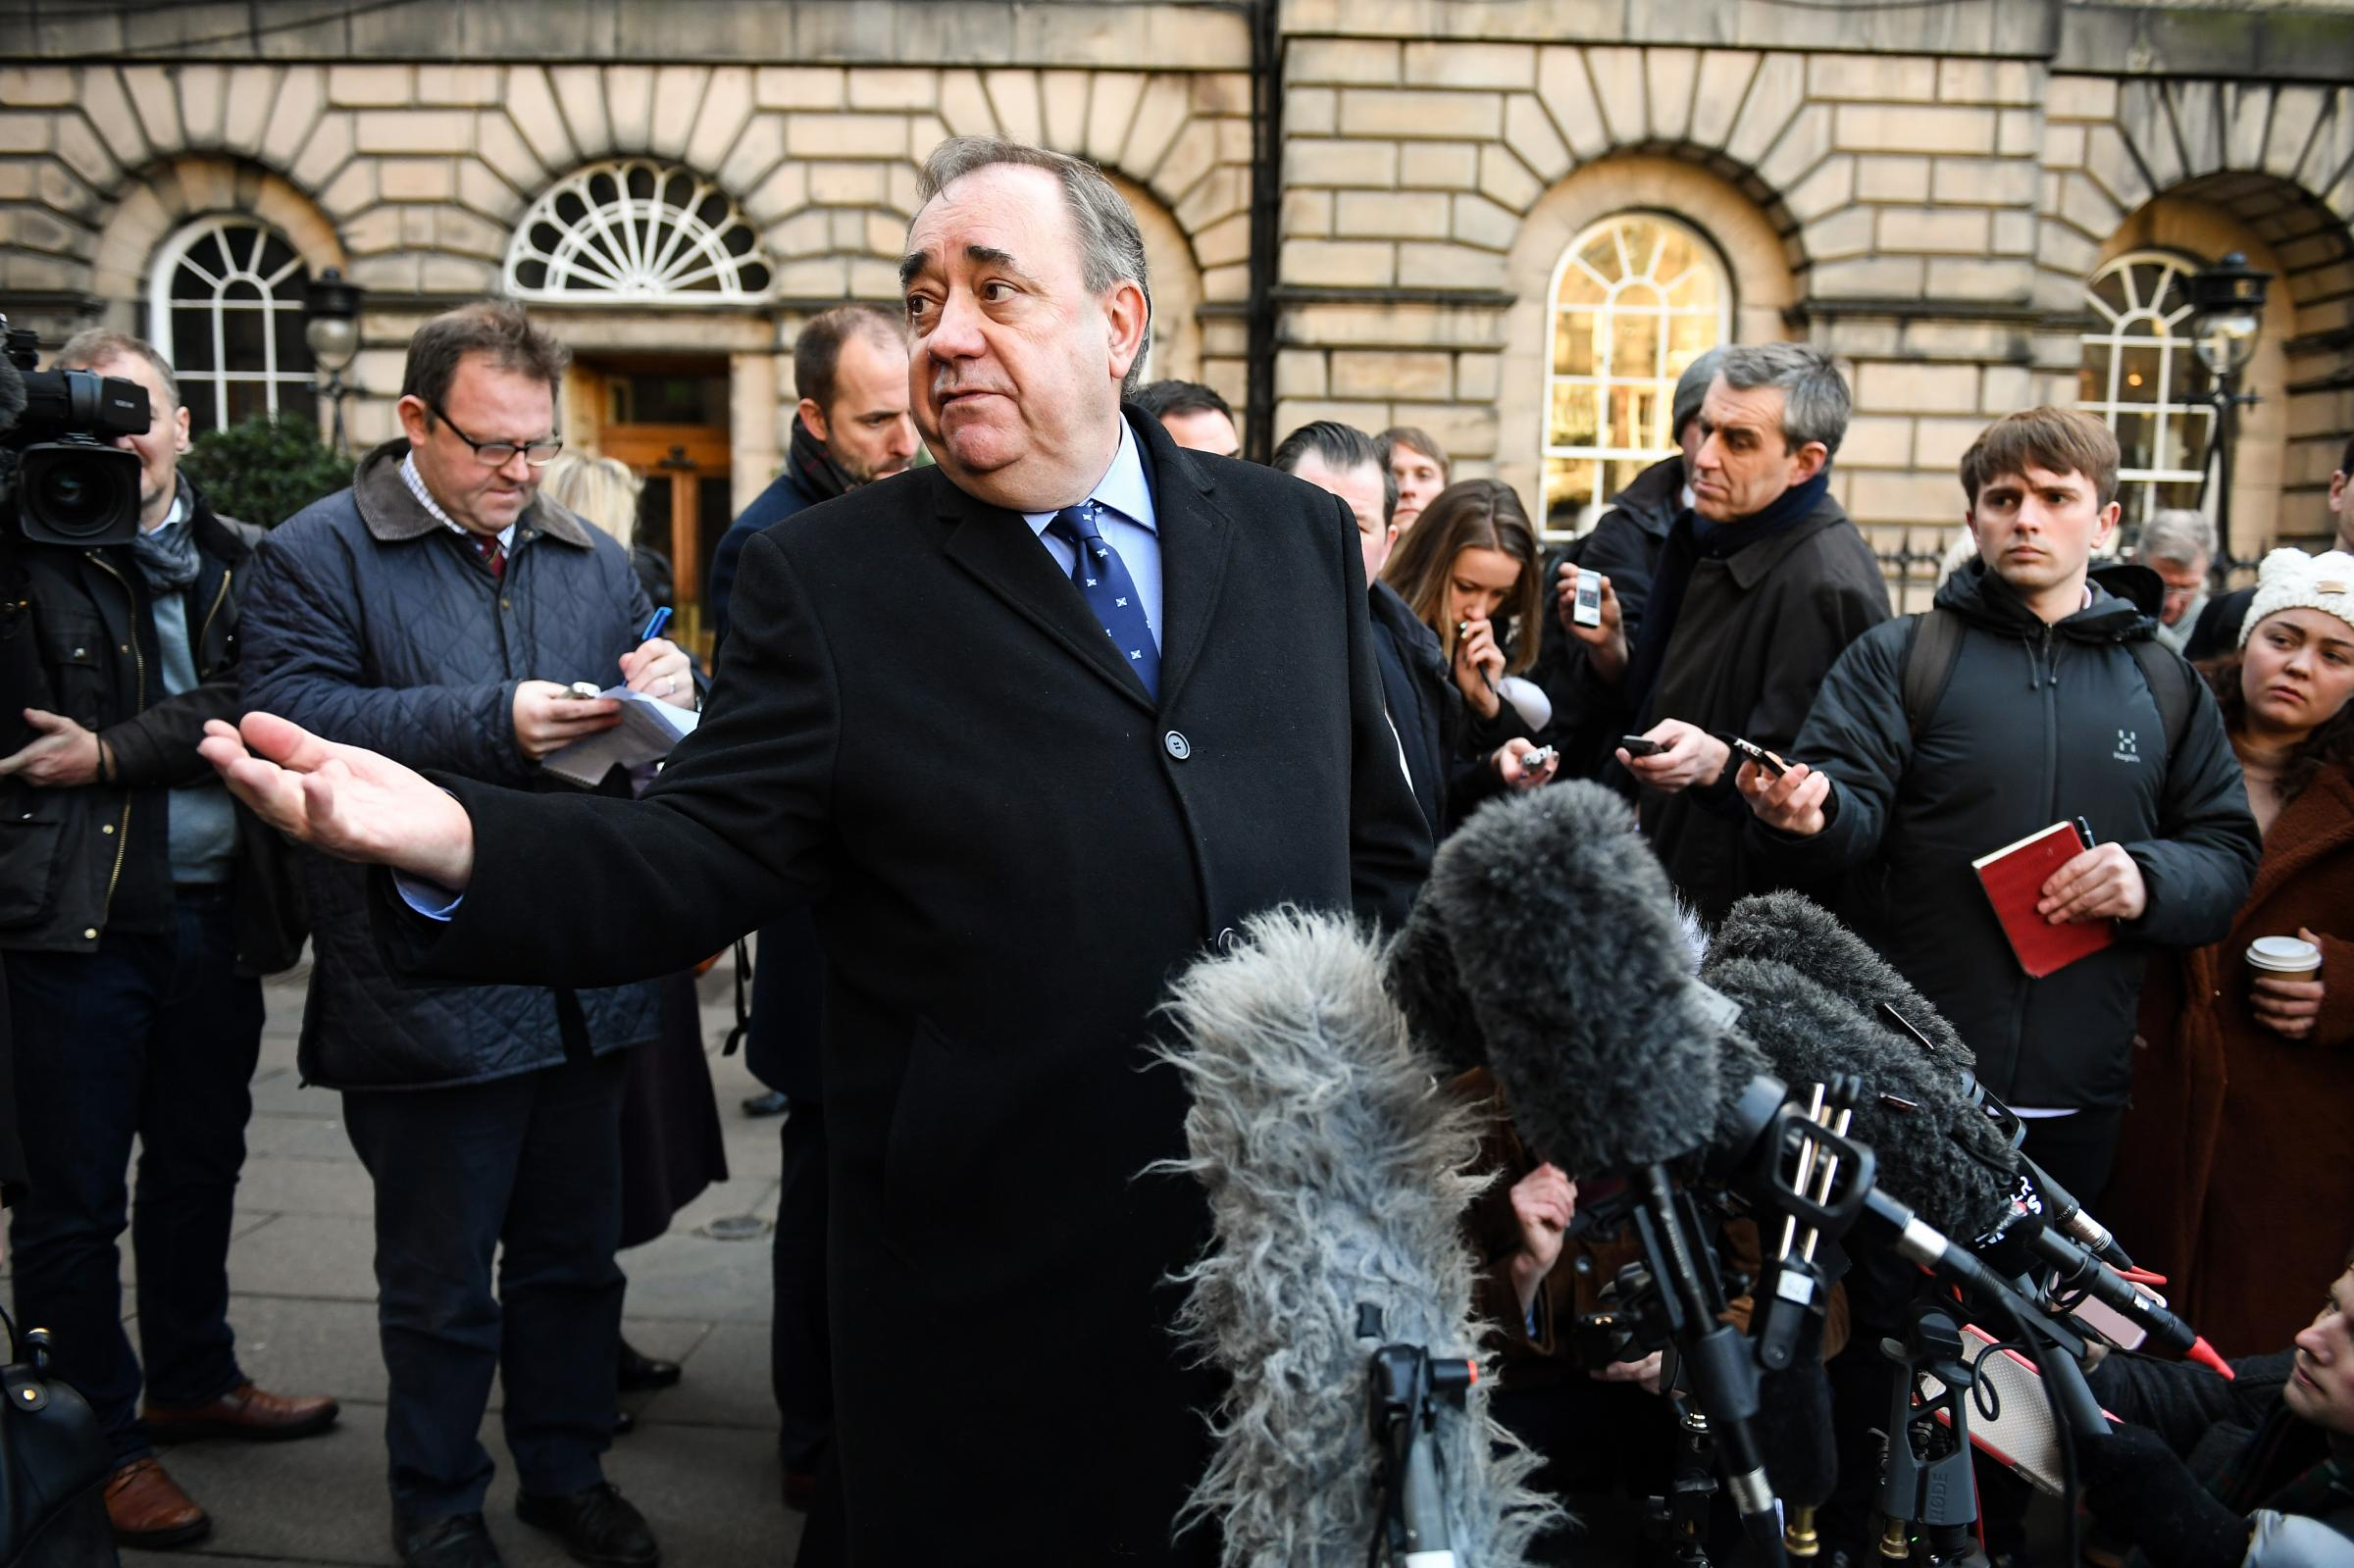 Alex Salmond urged Nicola Sturgeon to be 'concentrating all her energies on the independence agenda'